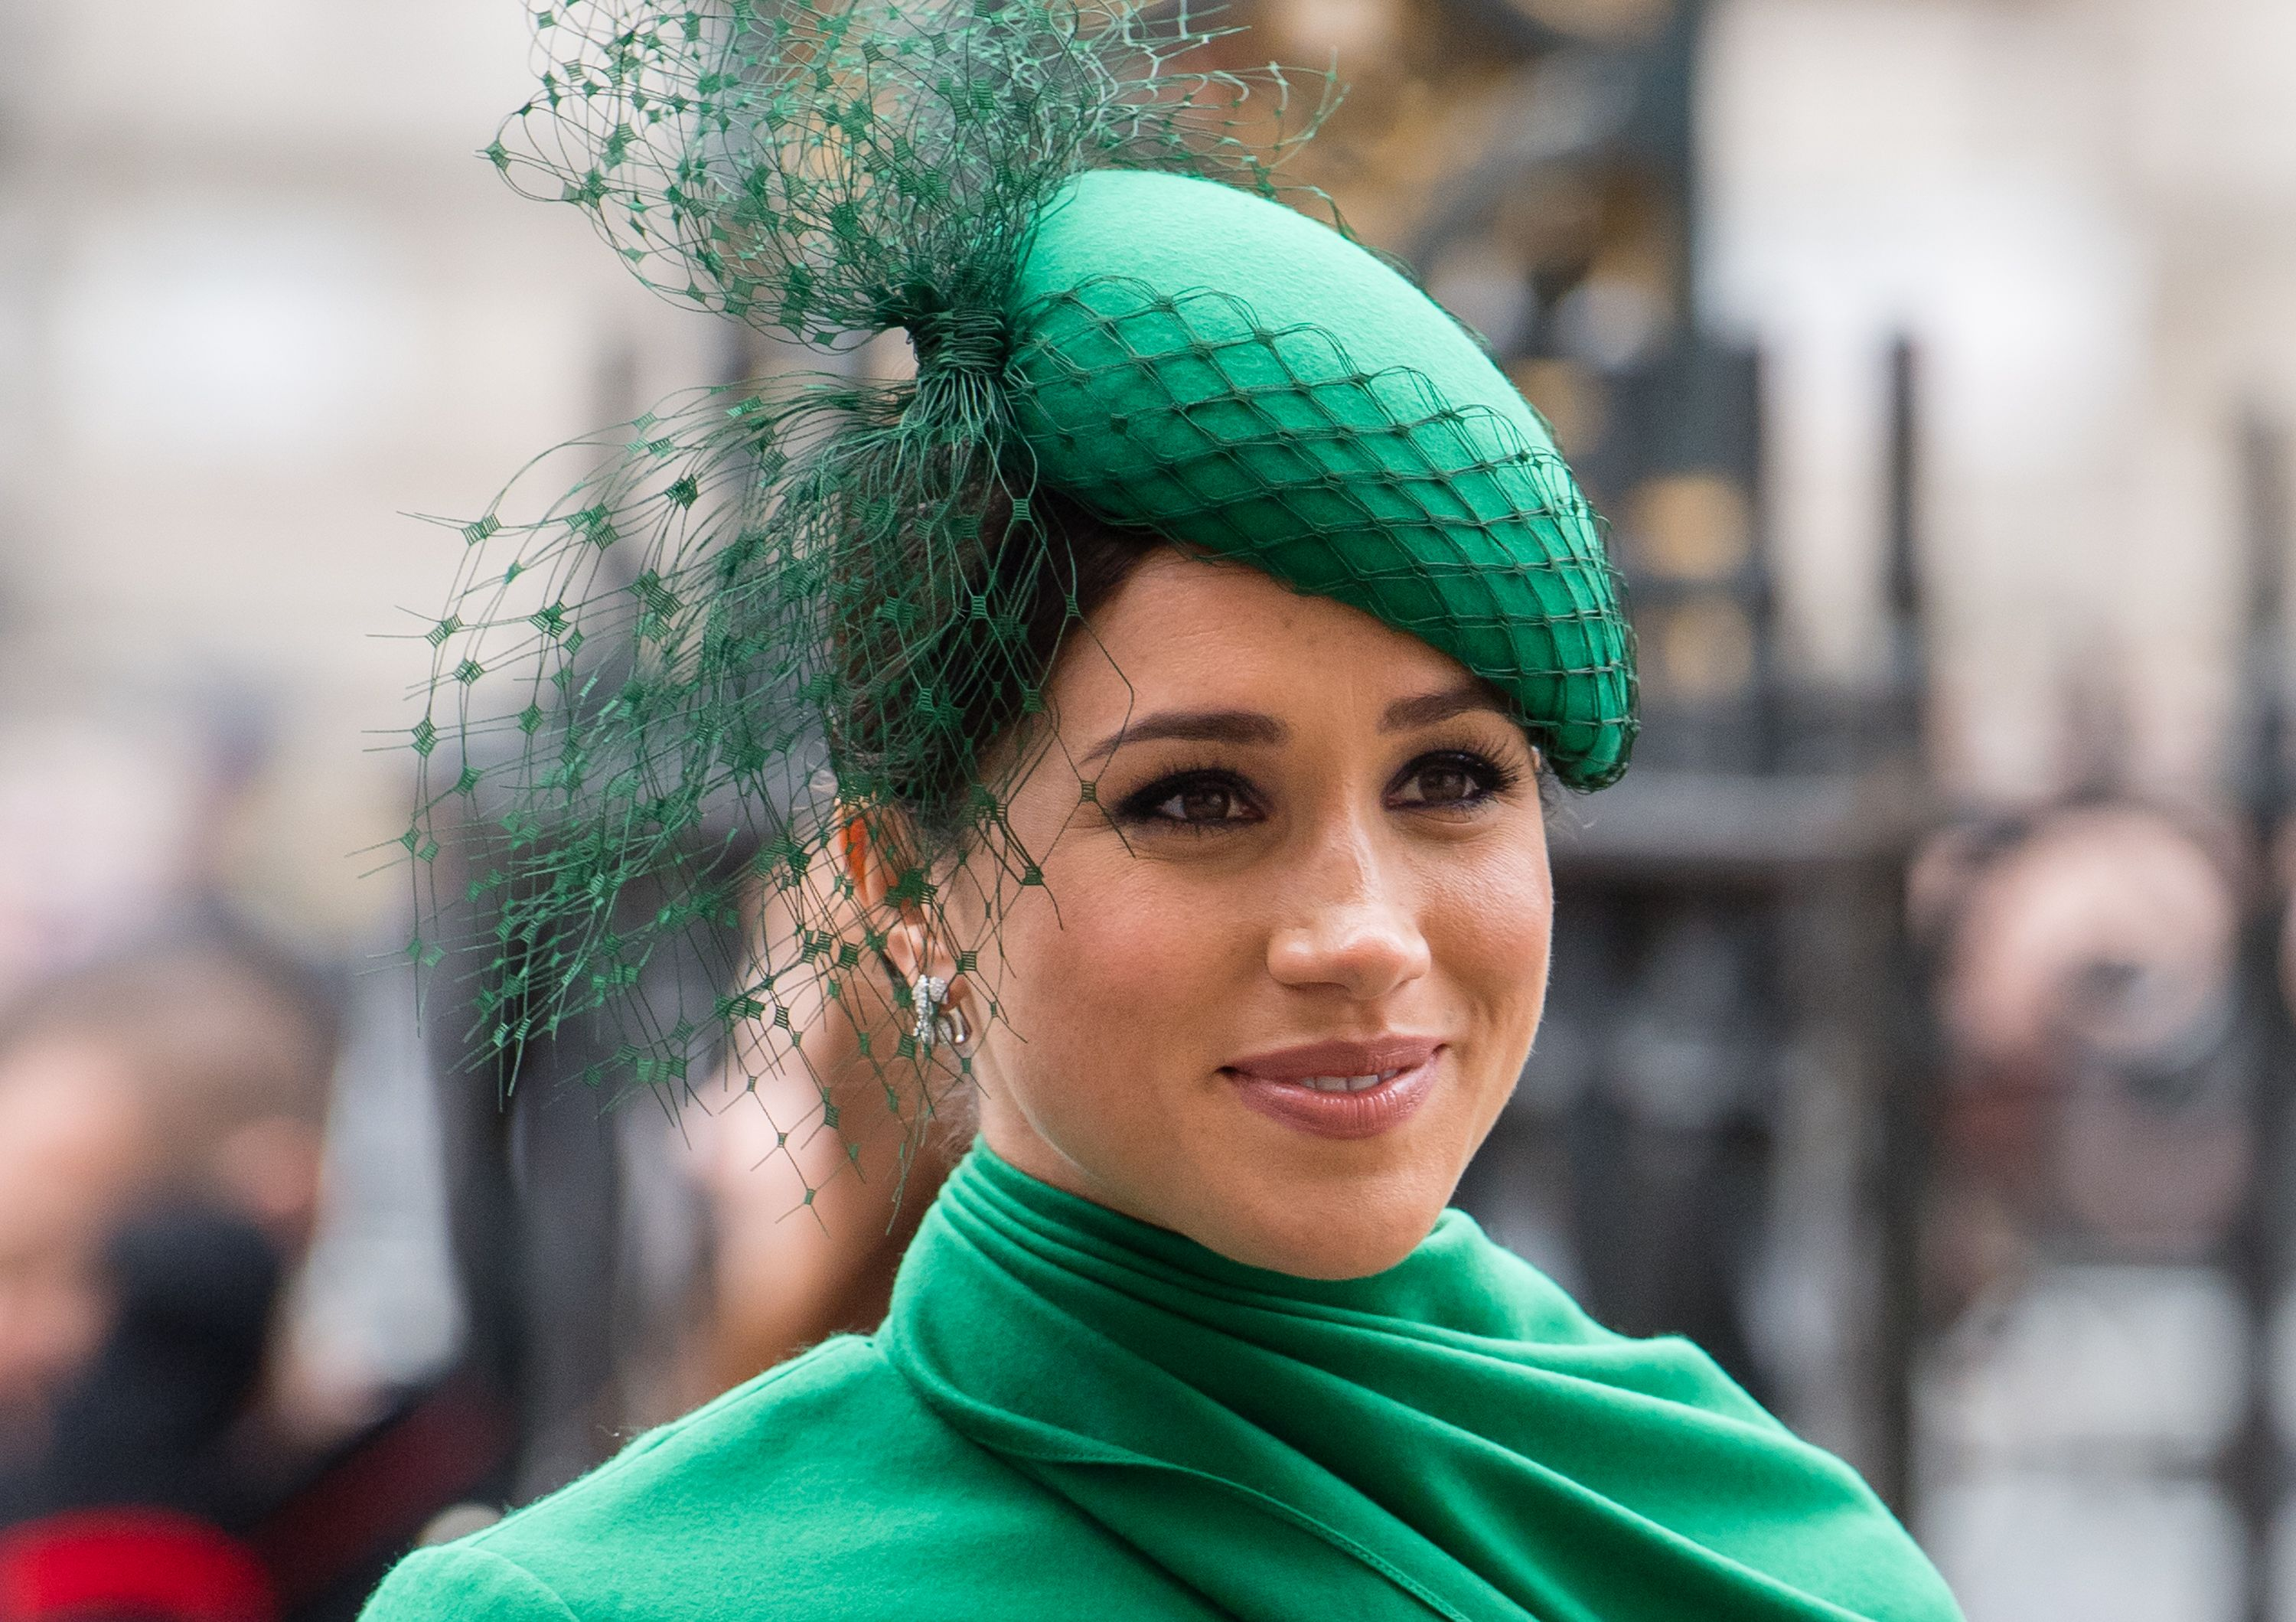 Meghan Markle at the Commonwealth Day Service 2020 on March 09, 2020 in London, England   Photo: Getty Images